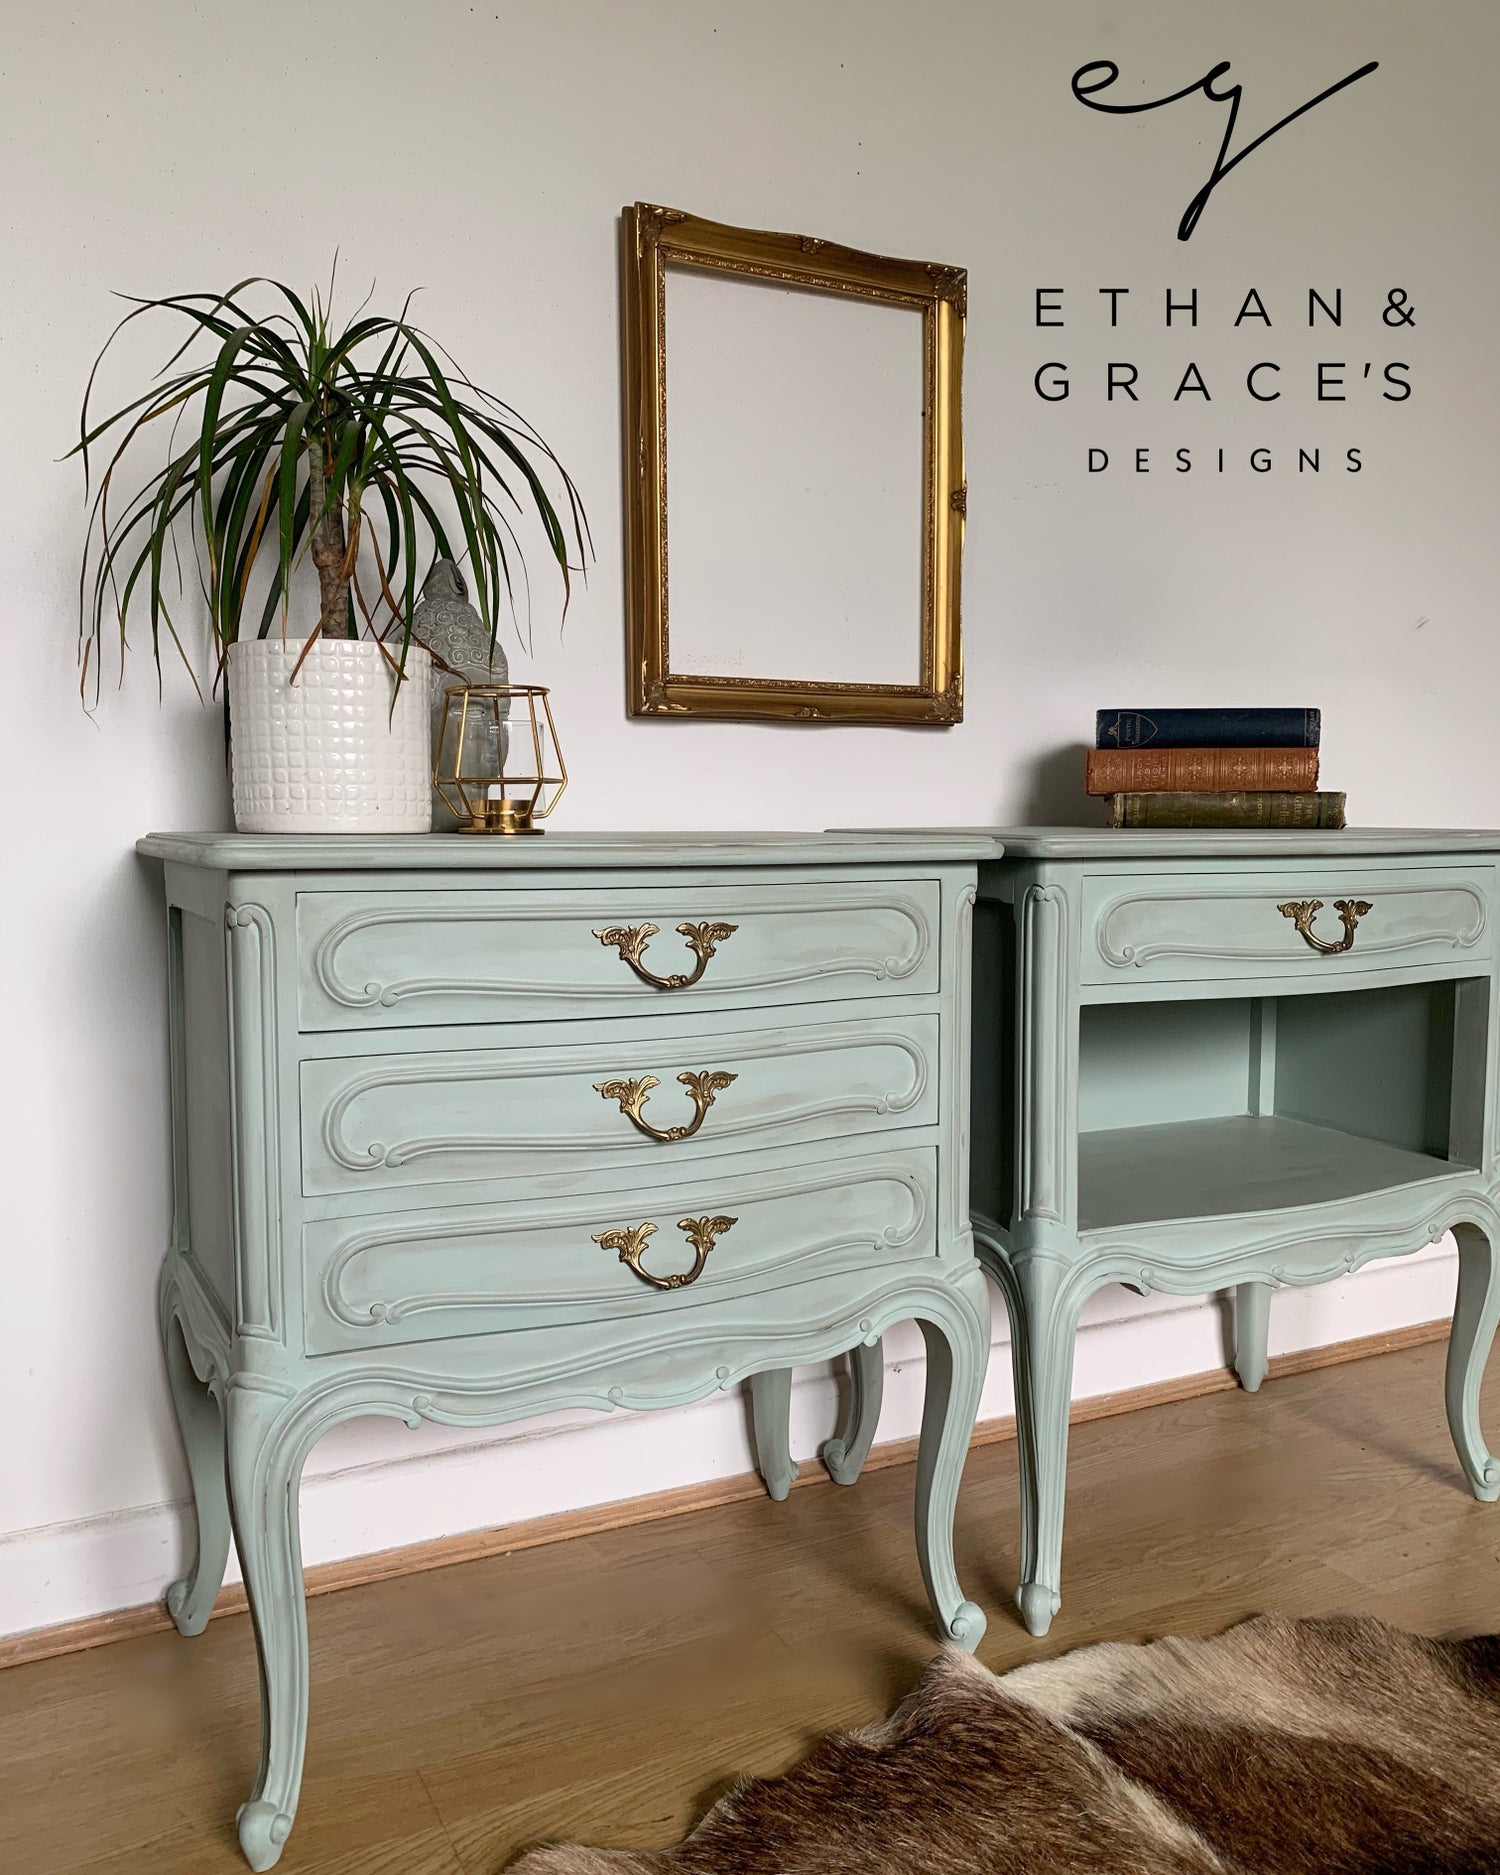 Image of French wooden bedside tables in a pale green with dark wax